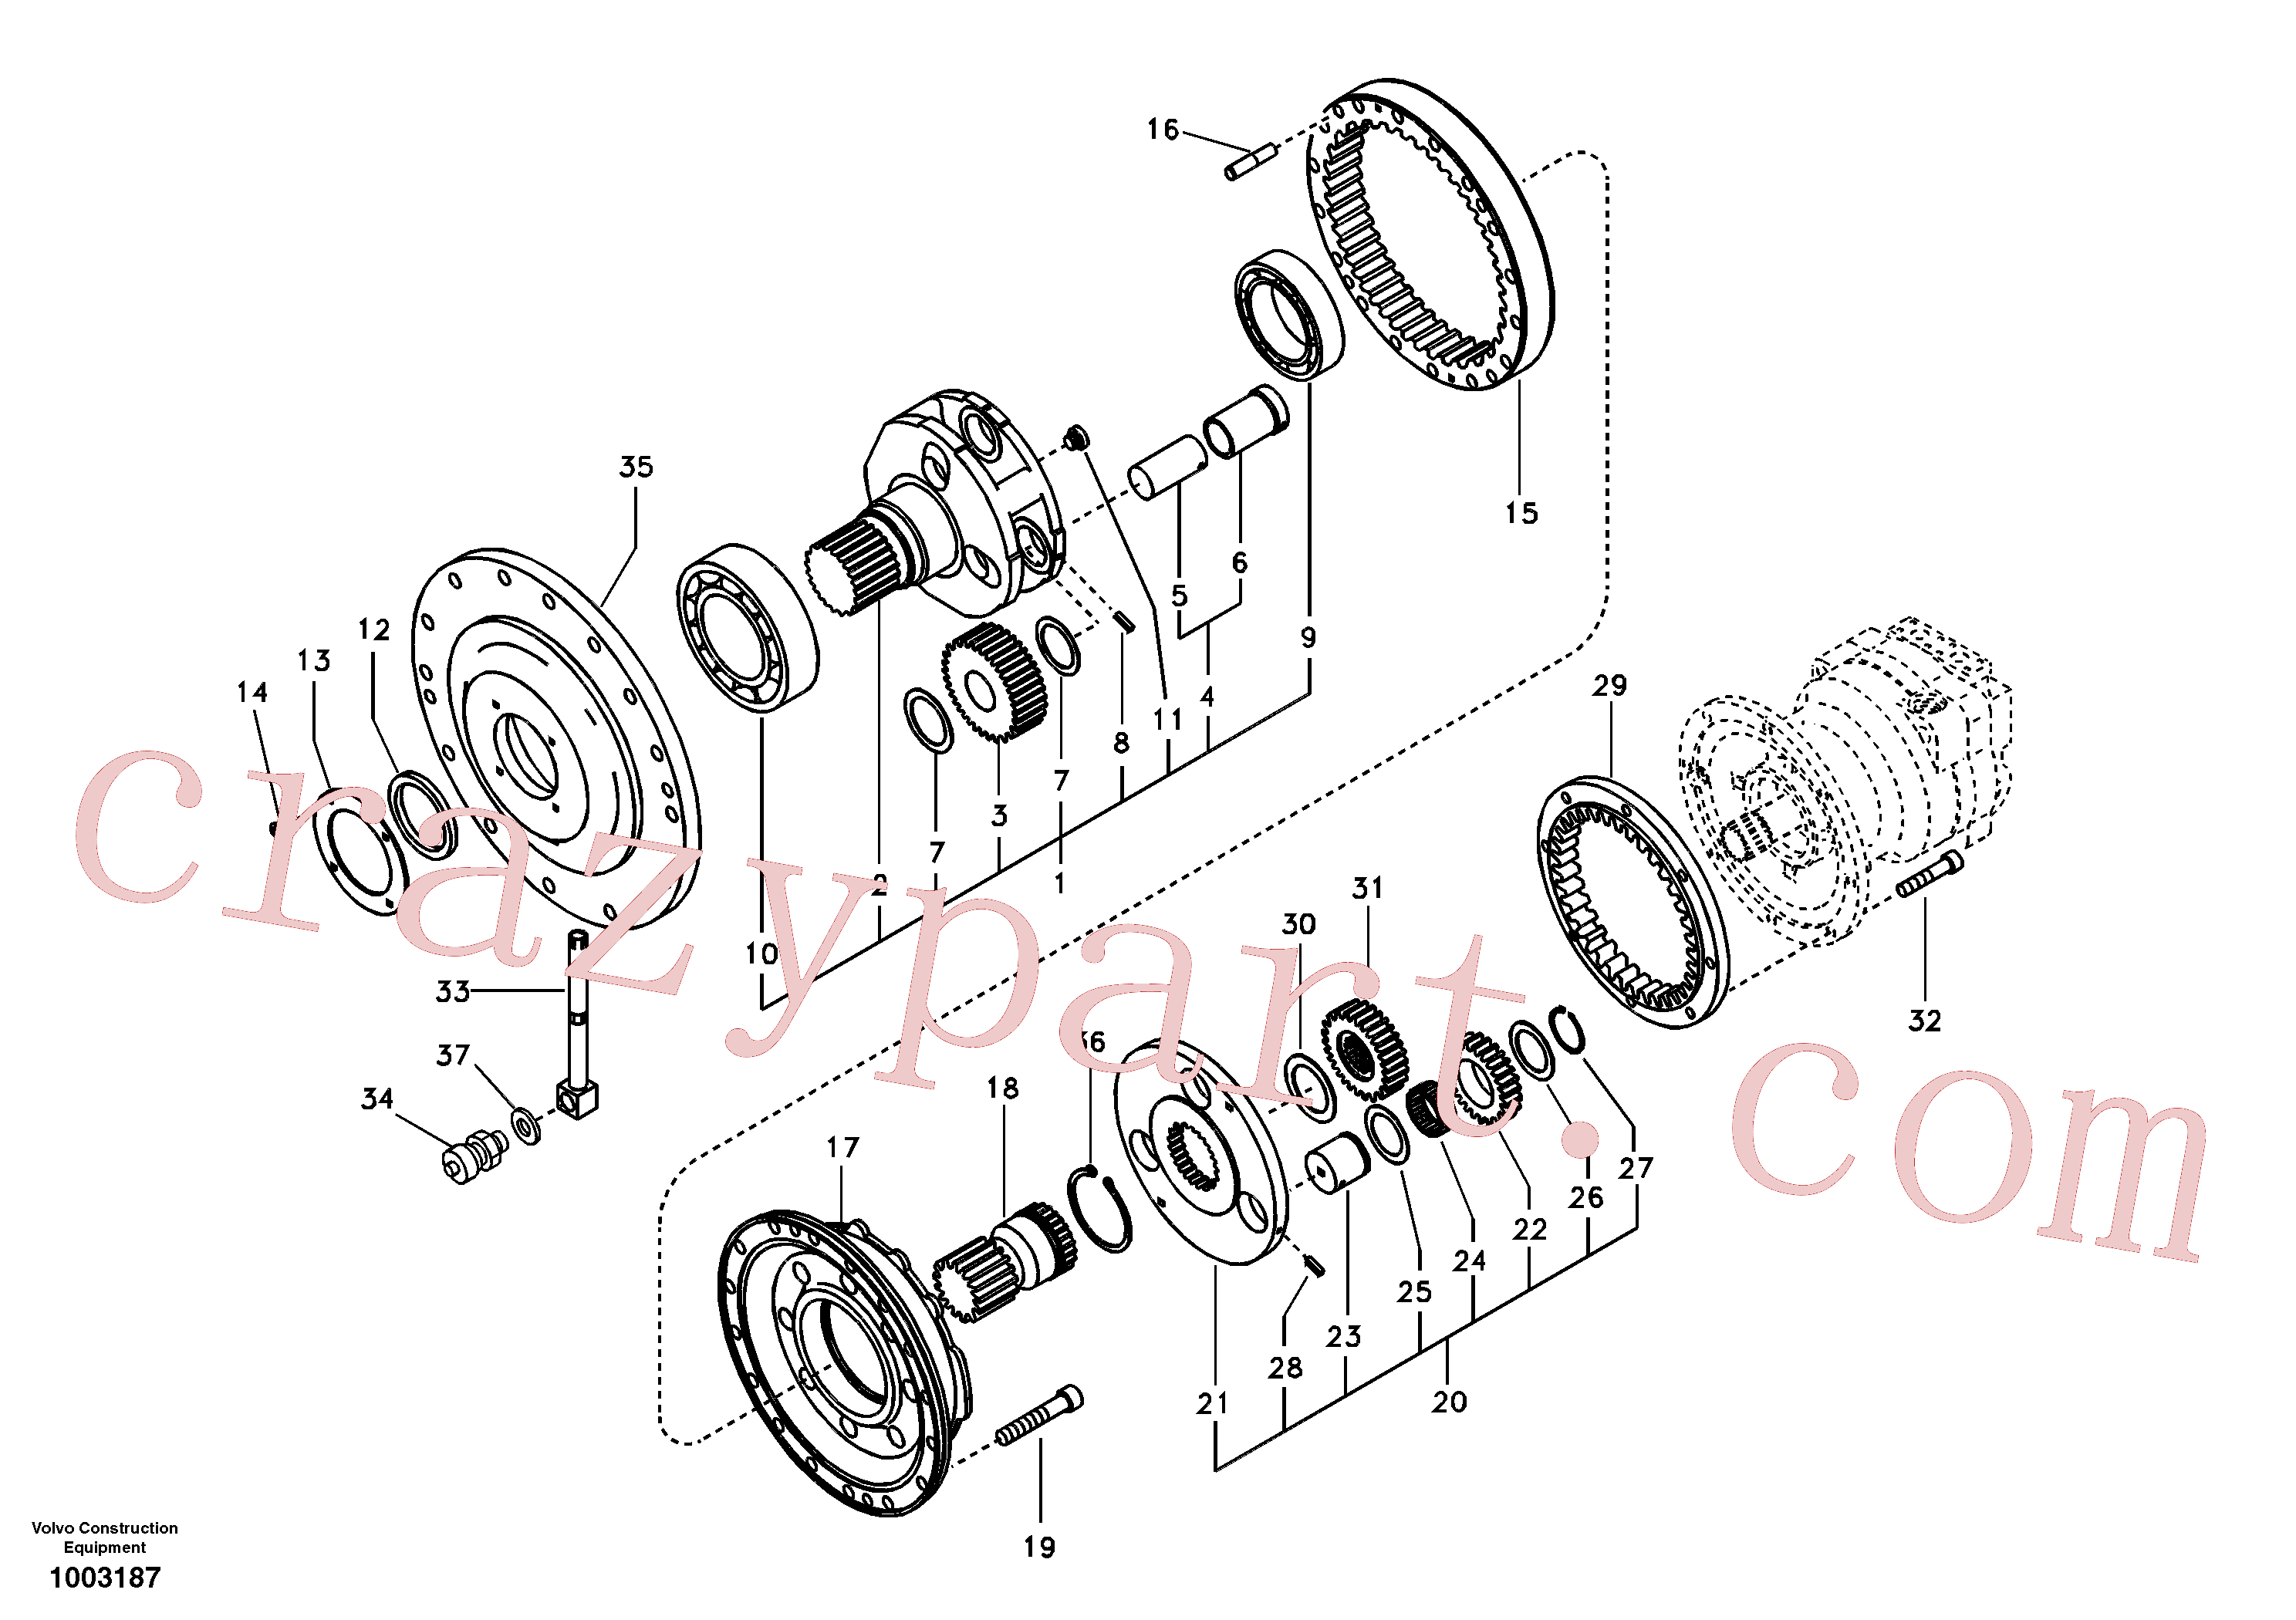 VOE14530355 for Volvo Swing gearbox(1003187 assembly)